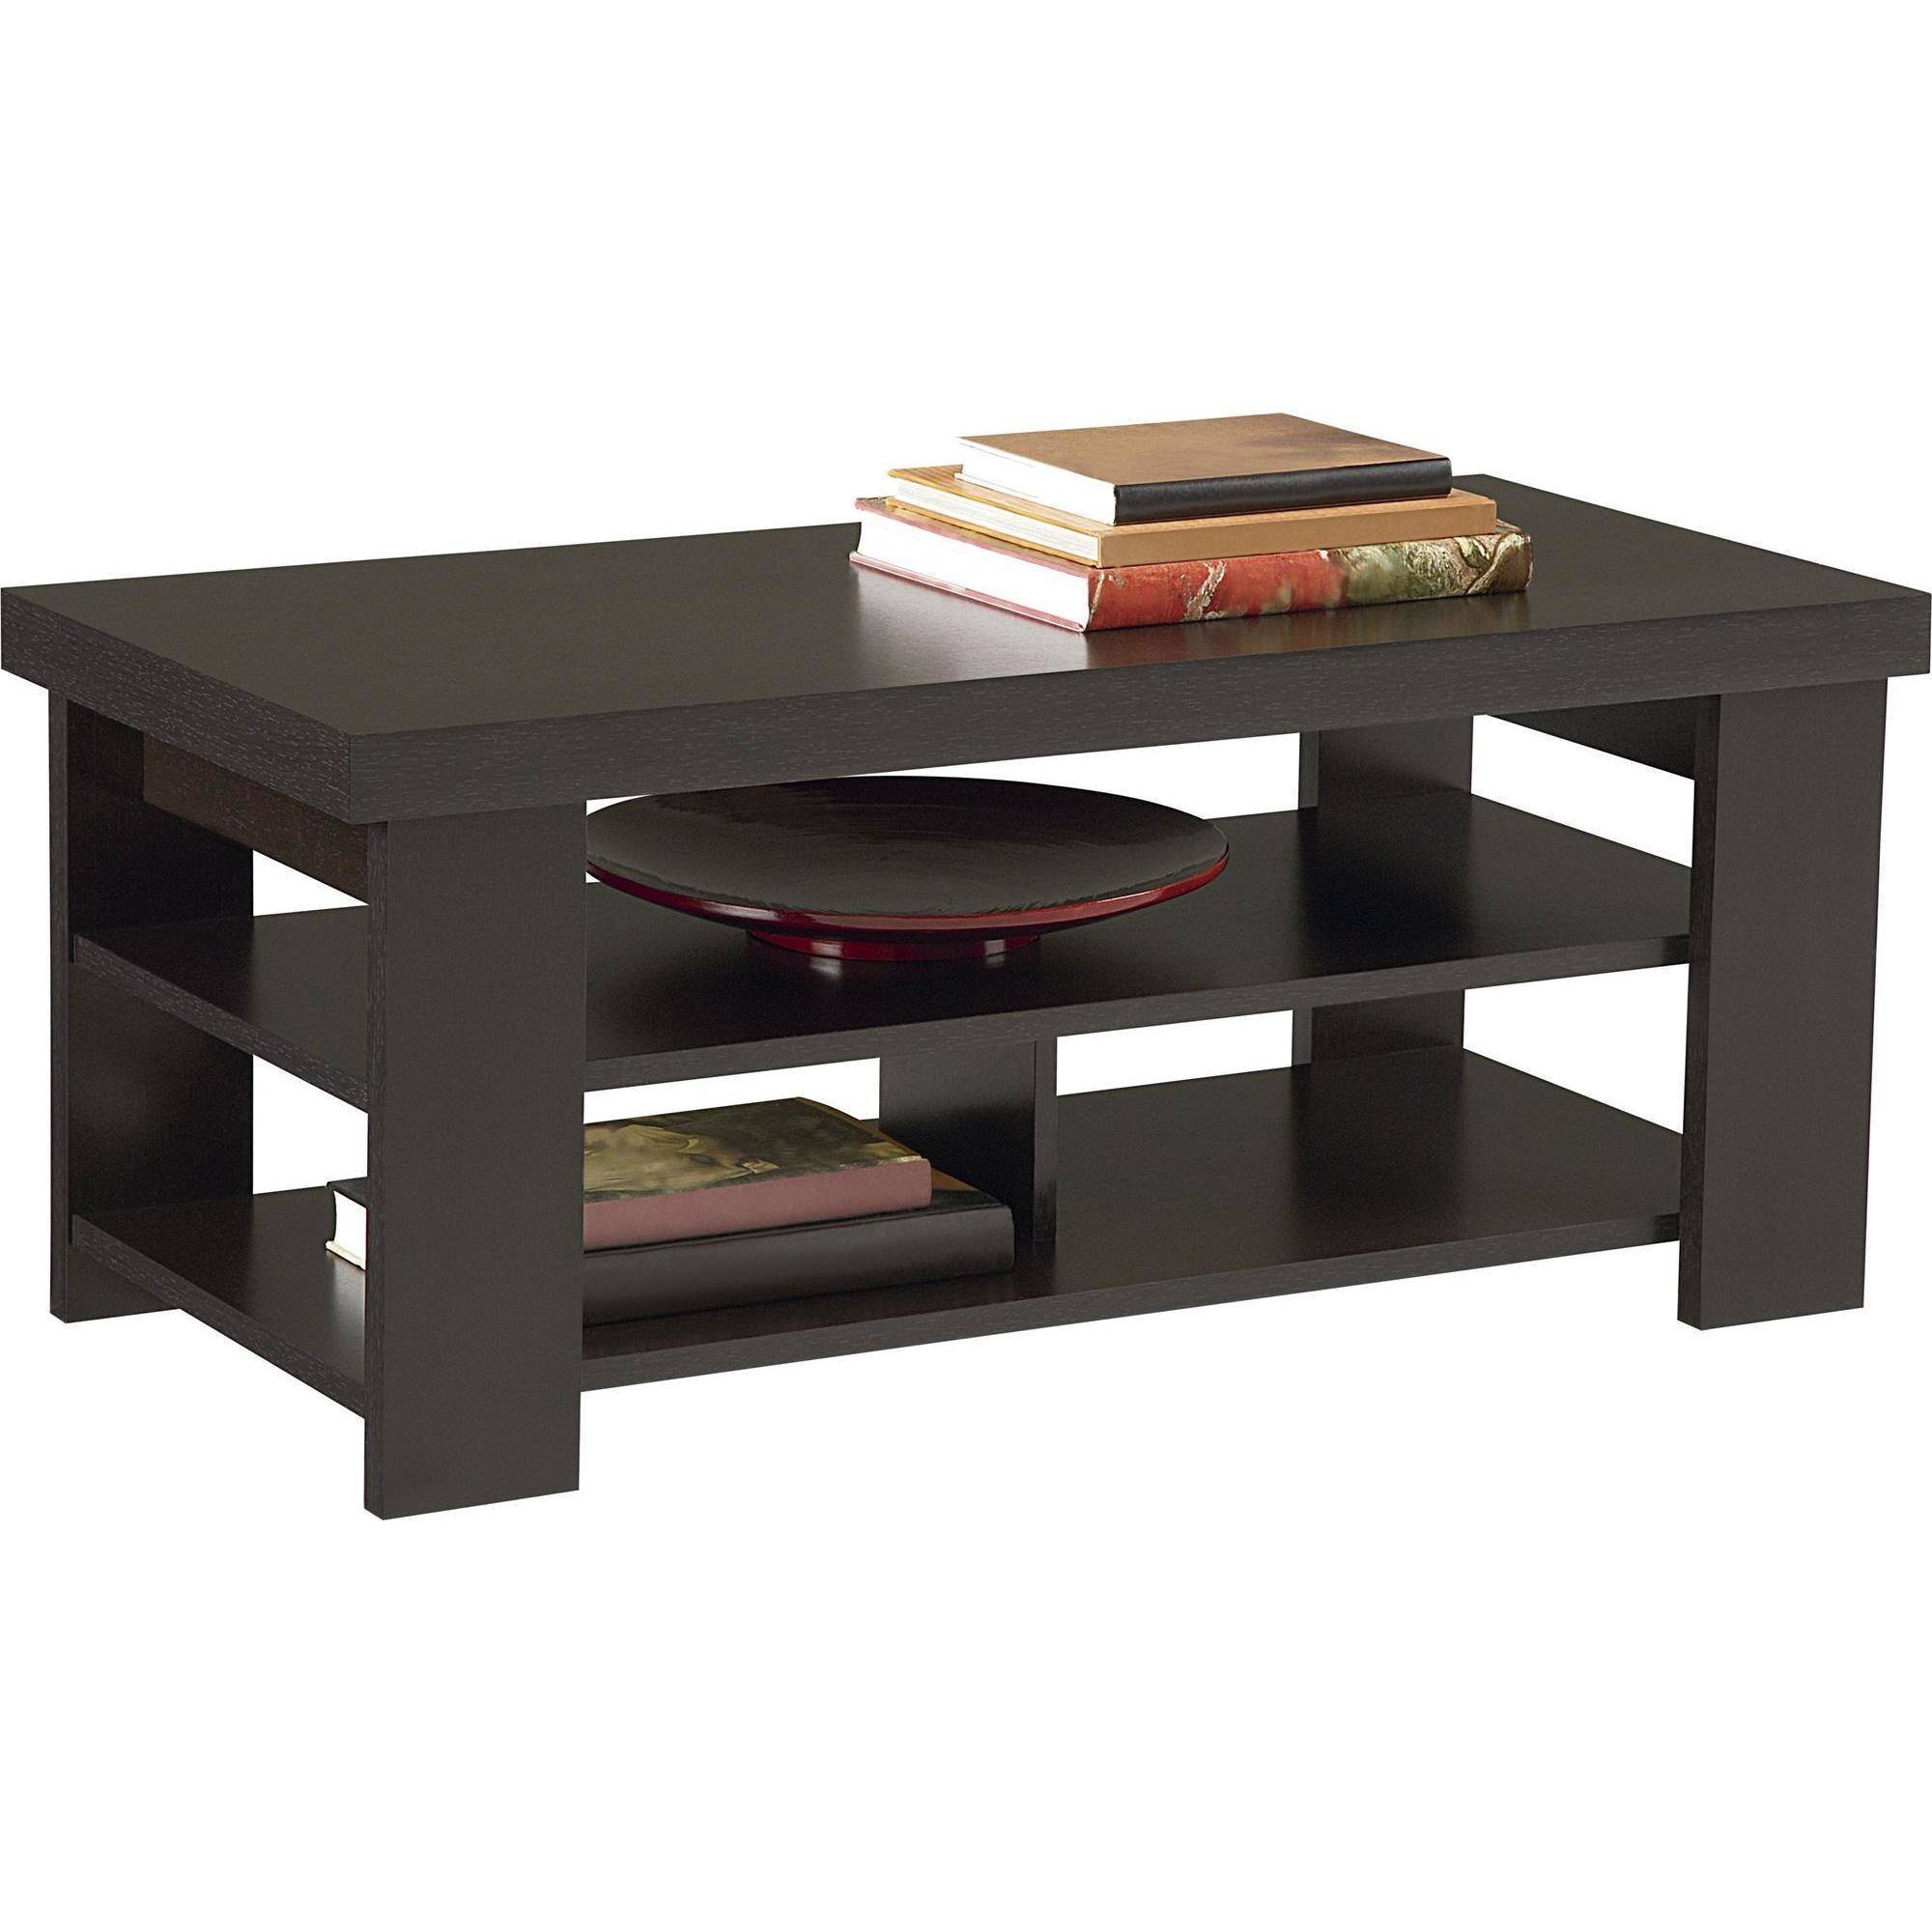 Ameriwood Home Jensen Coffee Table, Espresso - Walmart inside Dark Coffee Tables (Image 1 of 30)